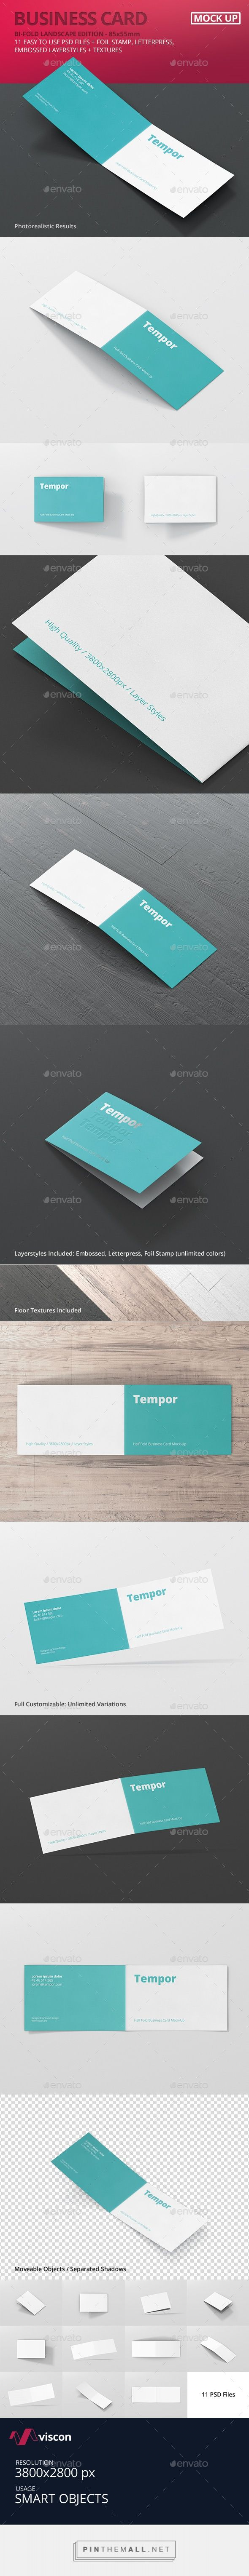 Best 25 folded business cards ideas on pinterest creative folded business card mockup by visconbiz magicingreecefo Image collections